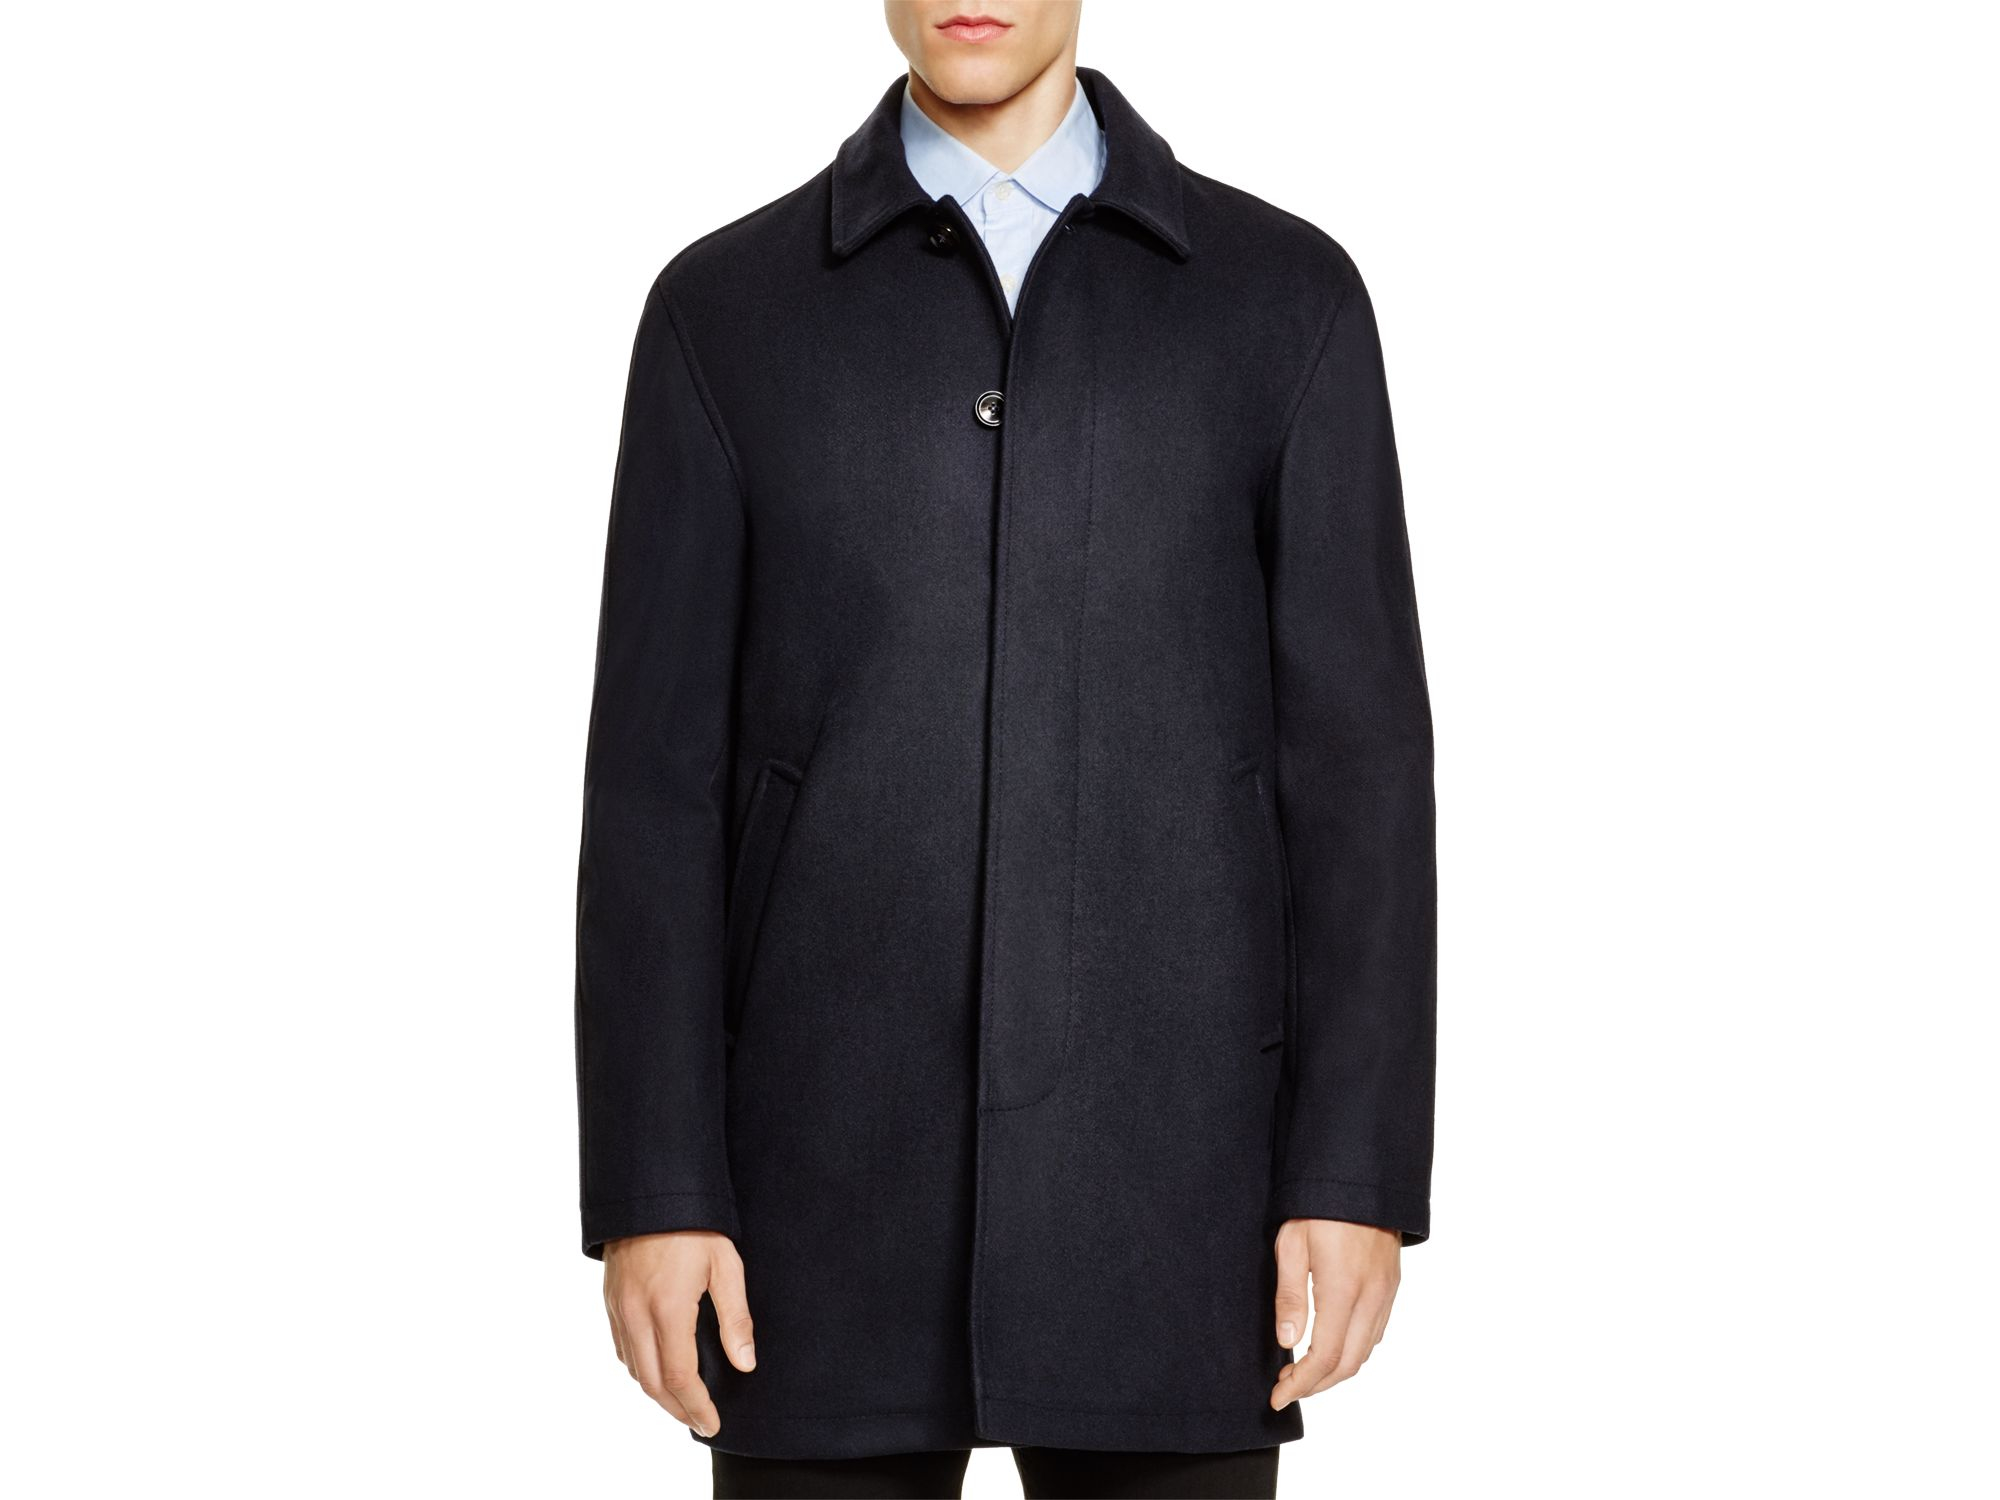 Hardy amies Wool Blend Car Coat - Bloomingdale's Exclusive in Blue ...